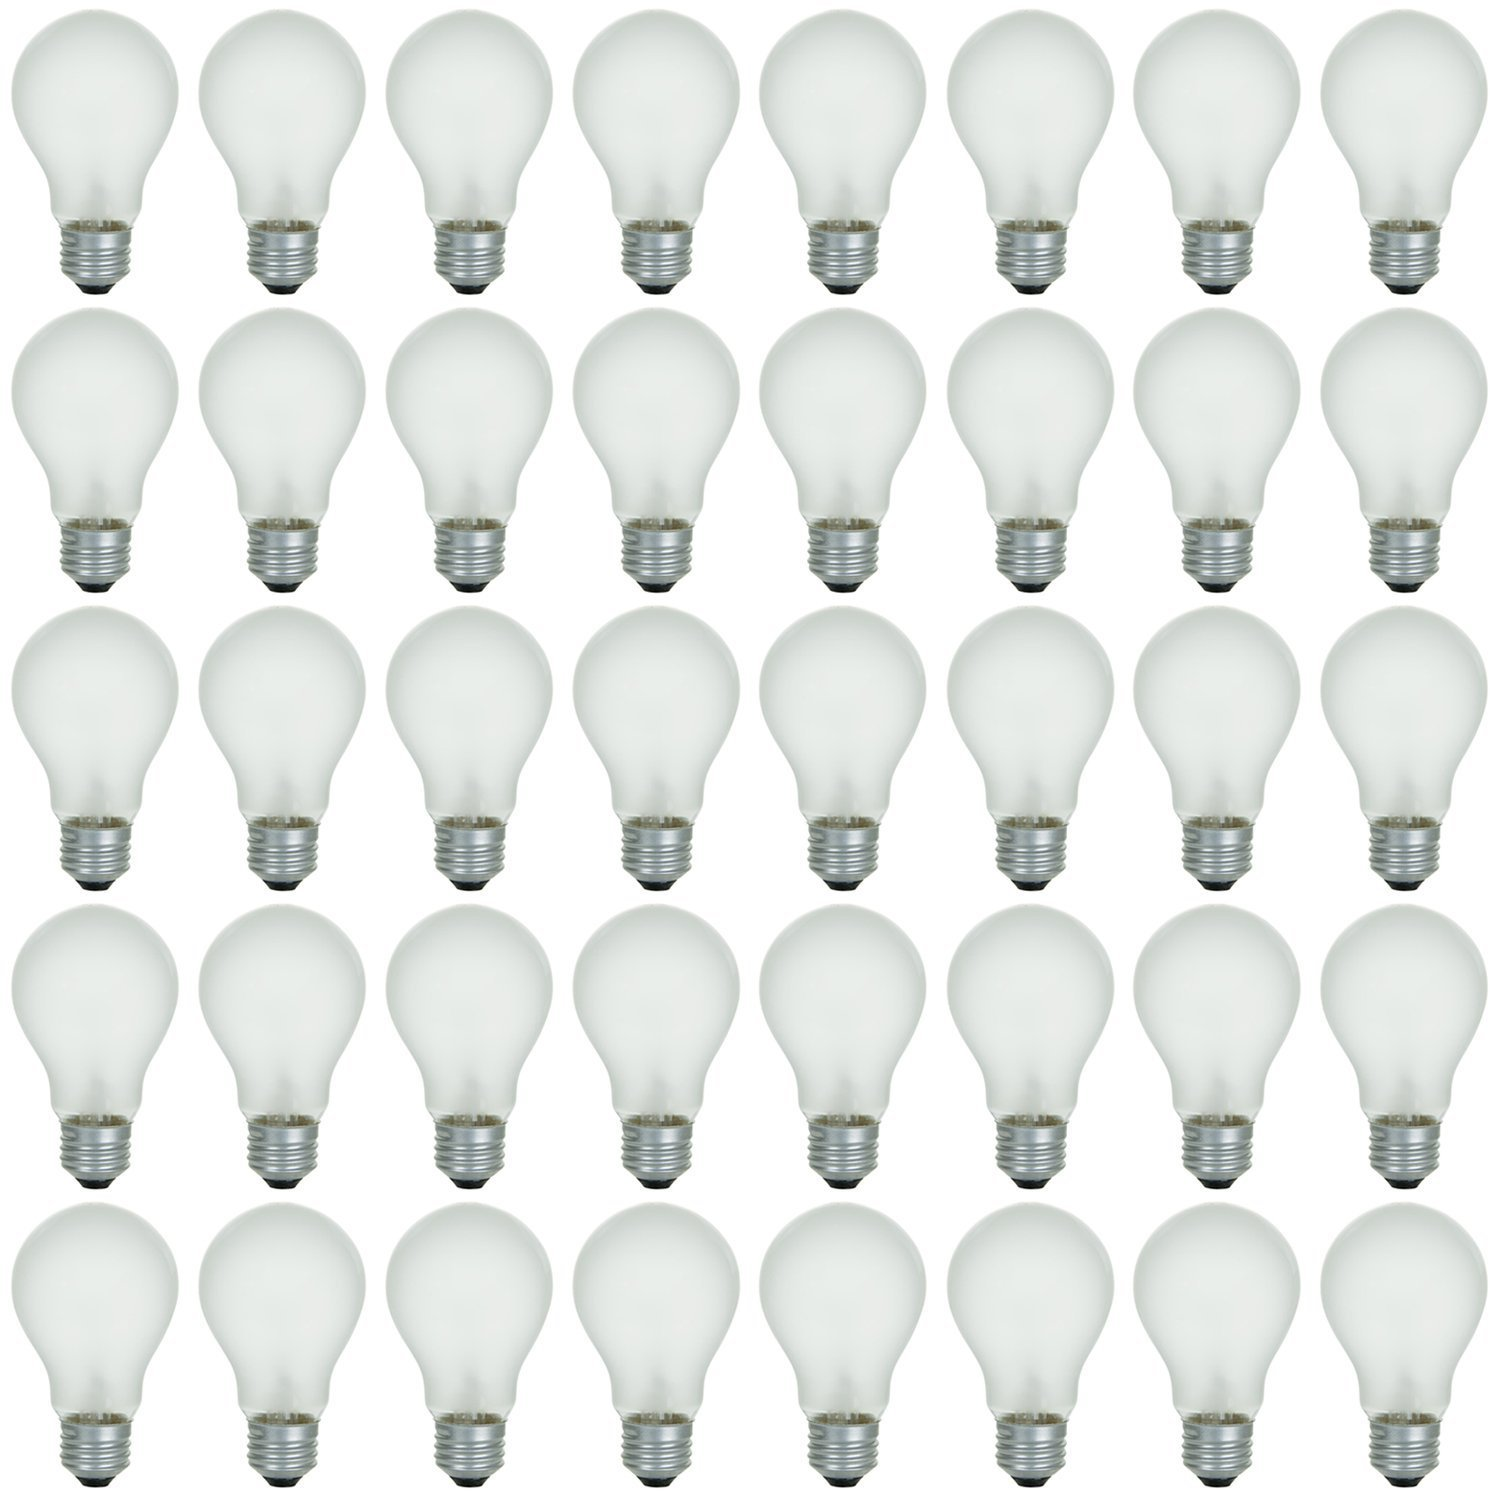 48 Pack of 40 Watt Long Life Incandescent Light Bulb, 130 Volts, Warm White, 3200K, Clear Finish, Medium Base - General Purpose: Lamps, Ceiling & Wall Fixtures, and More